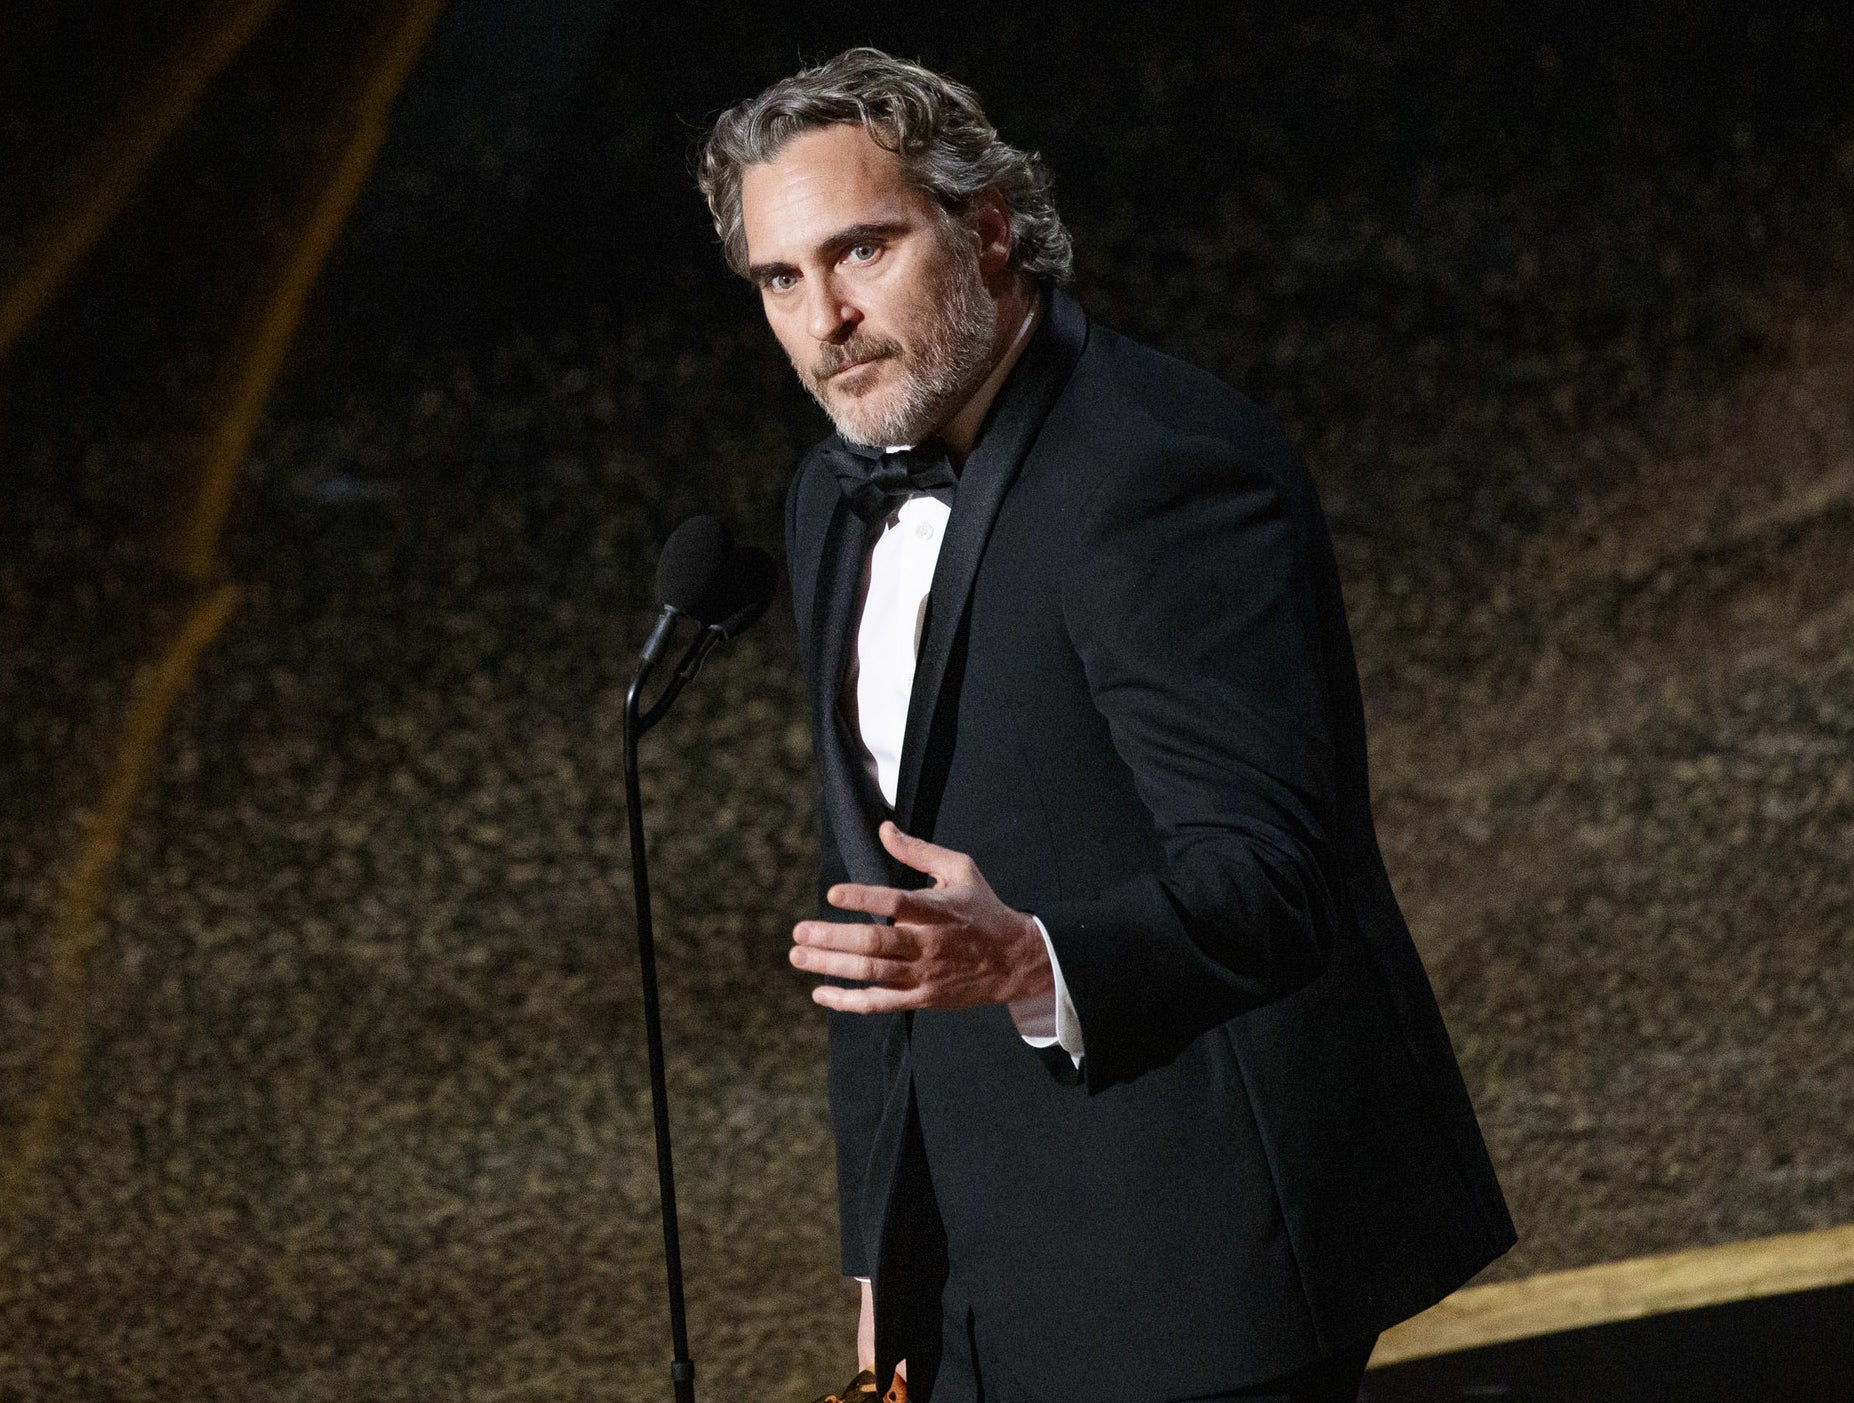 Joaquin looks serious while speaking onstage